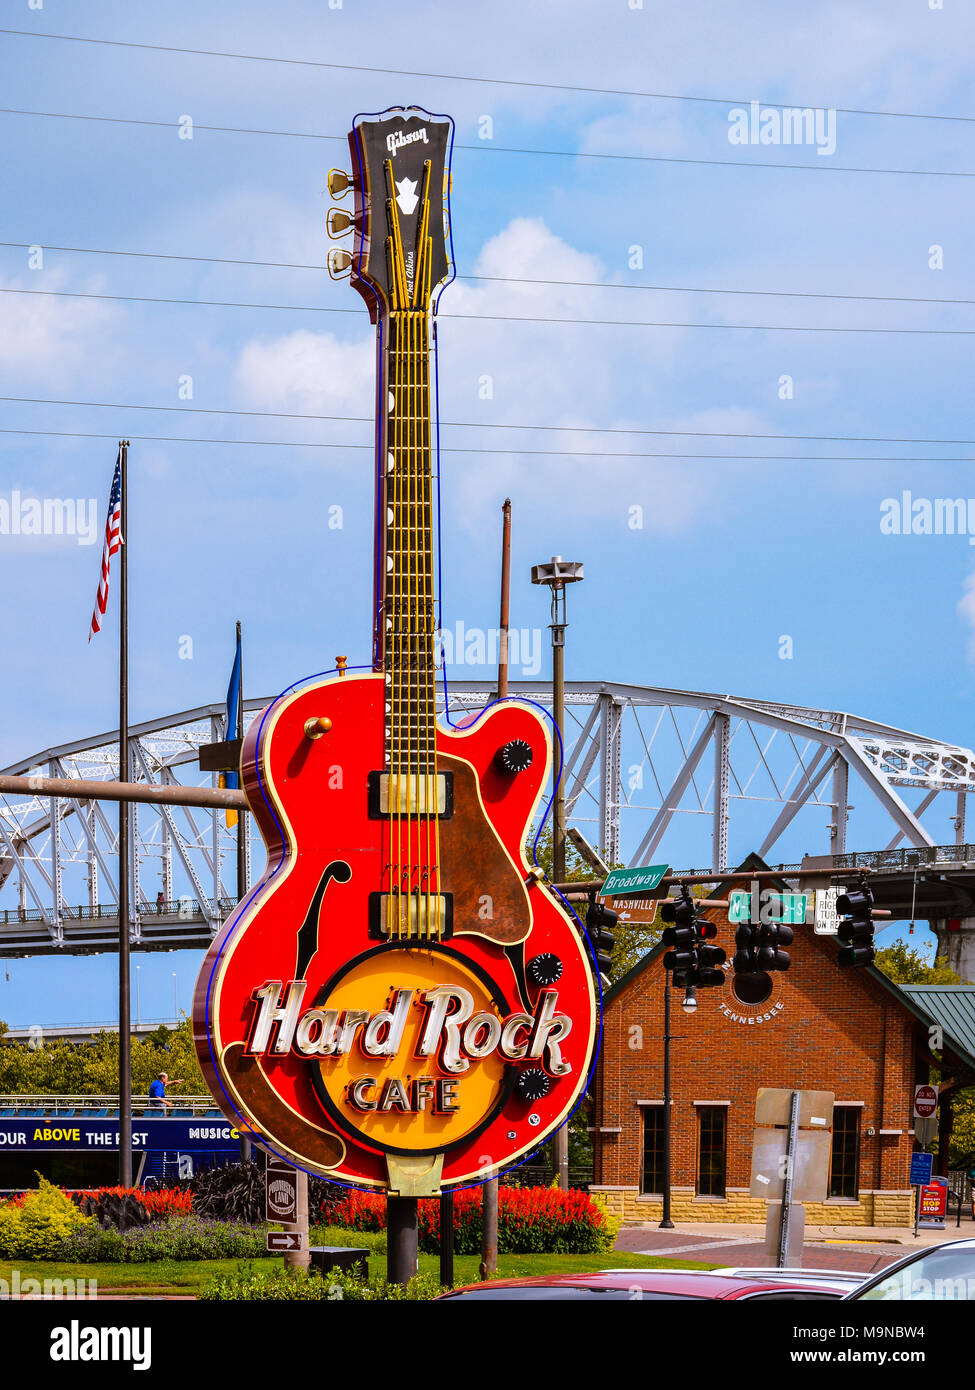 Nashville, TN - Hard Rock Cafe's giant outdoor guitar used as advertising prop. - Stock Image